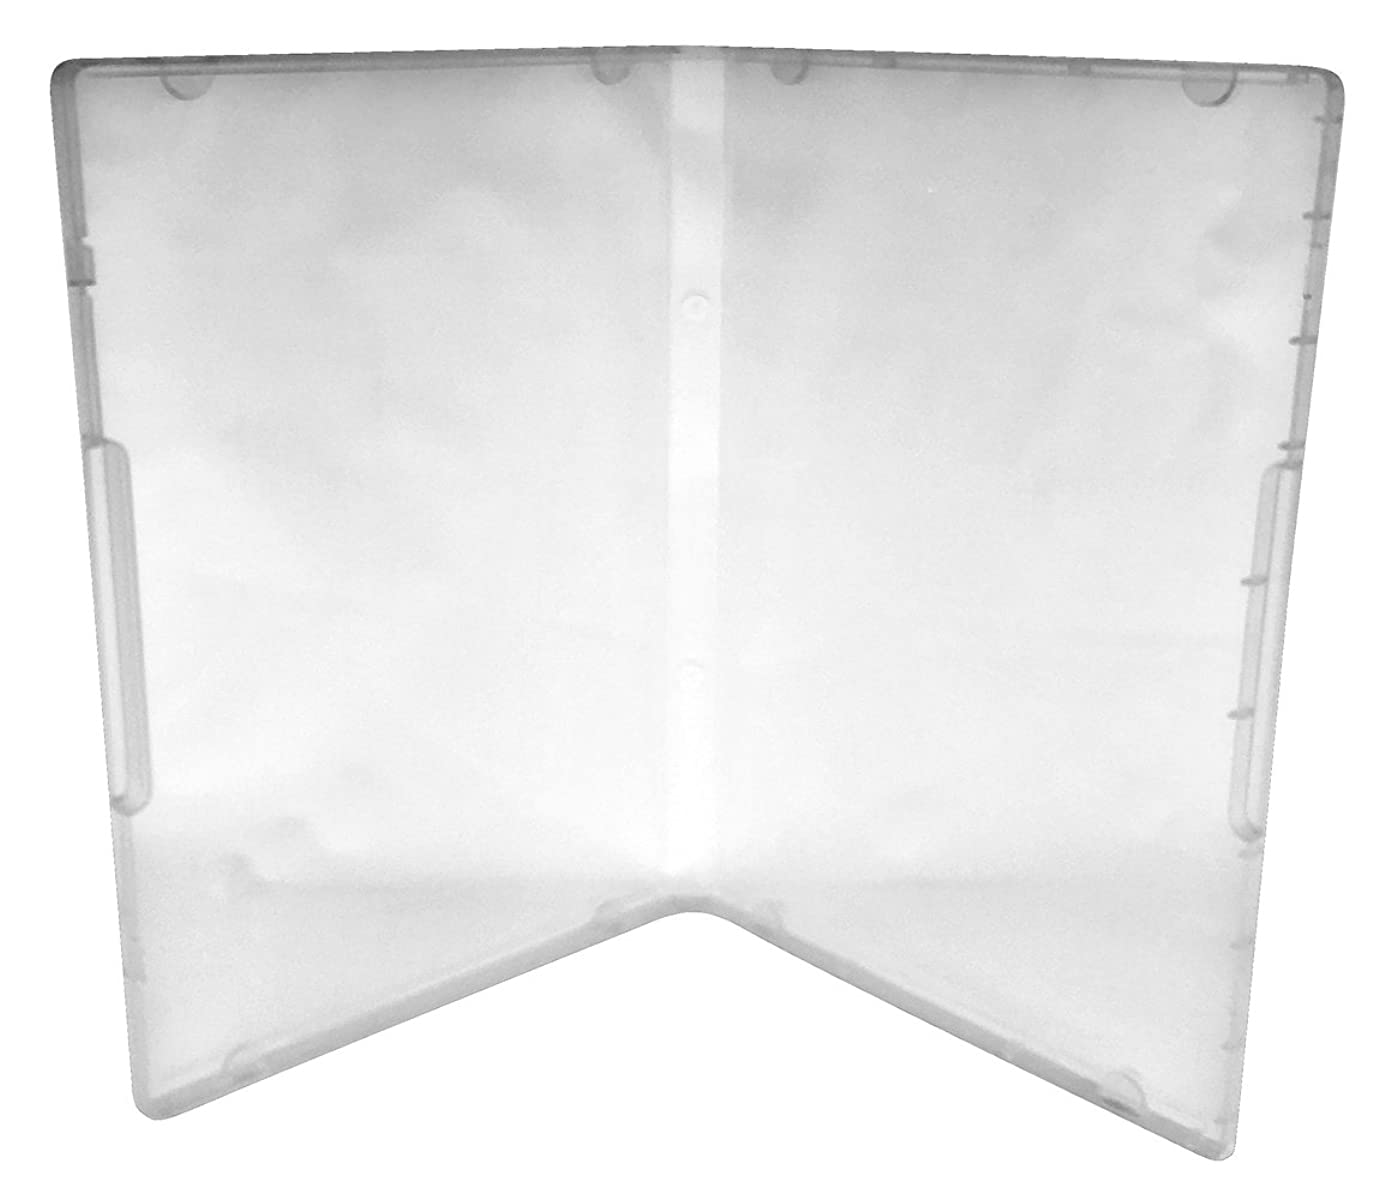 (10) CheckOutStore Plastic Storage Cases for Rubber Stamps (Clear / Spine: 14 mm / 8 Tabs) zcw4979626